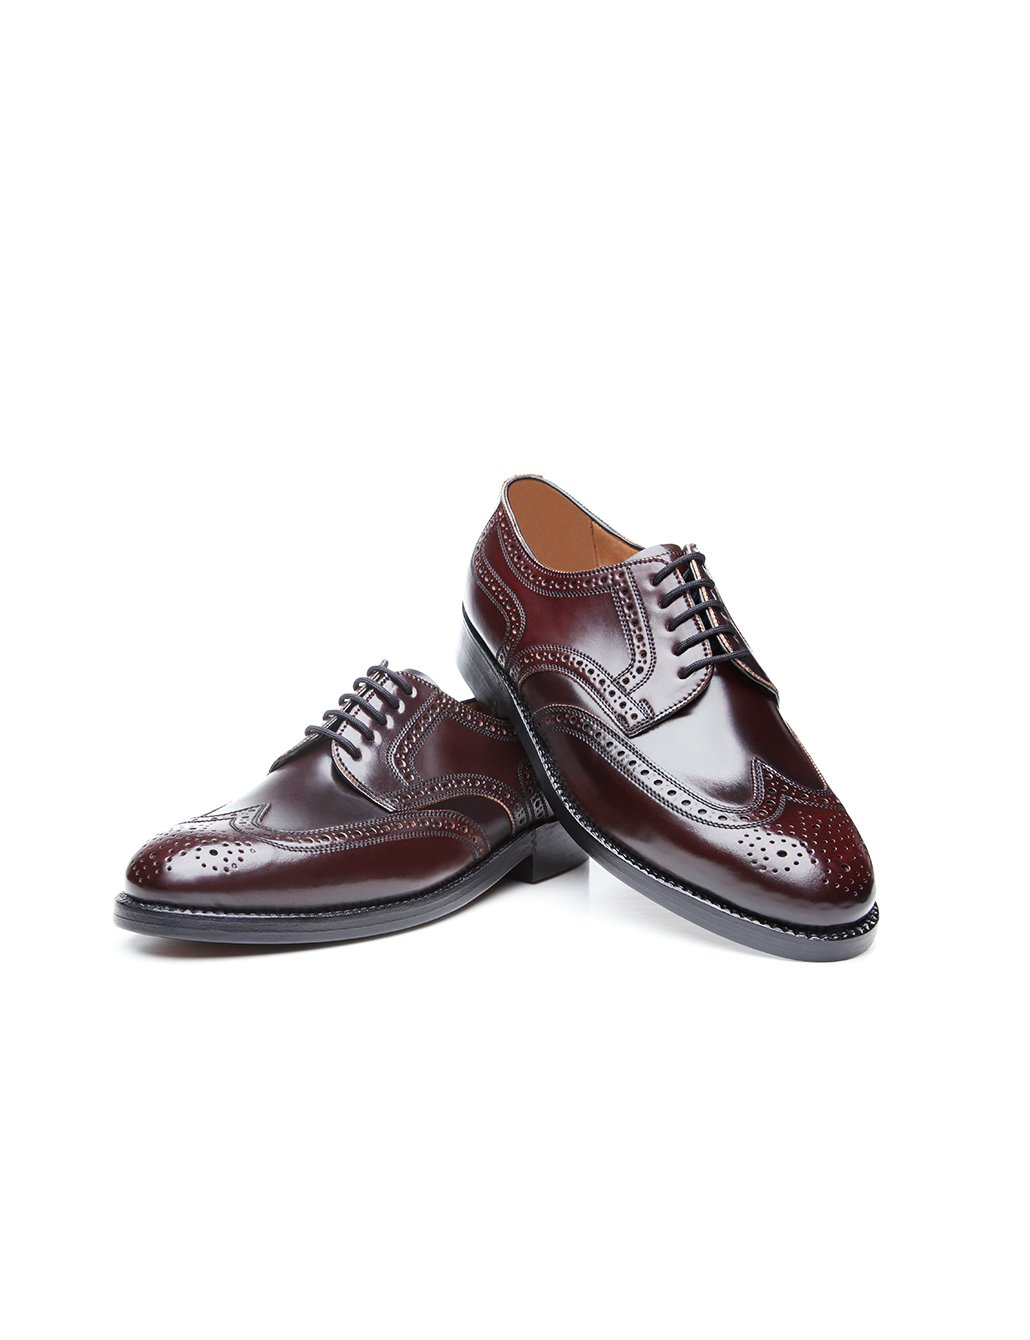 London Full-Brogue C